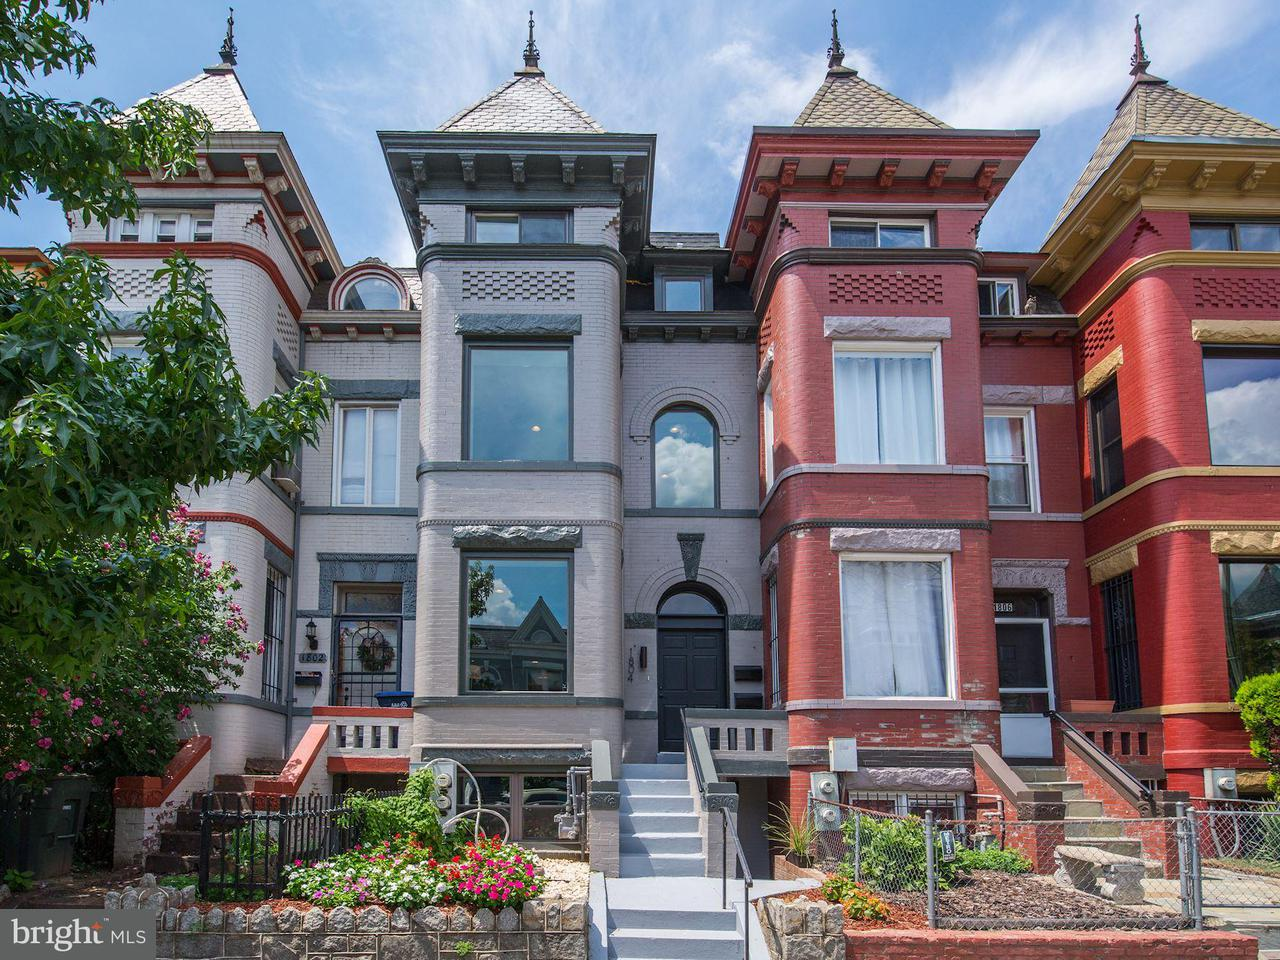 Townhouse for Sale at 1804 1ST ST NW #A 1804 1ST ST NW #A Washington, District Of Columbia 20001 United States